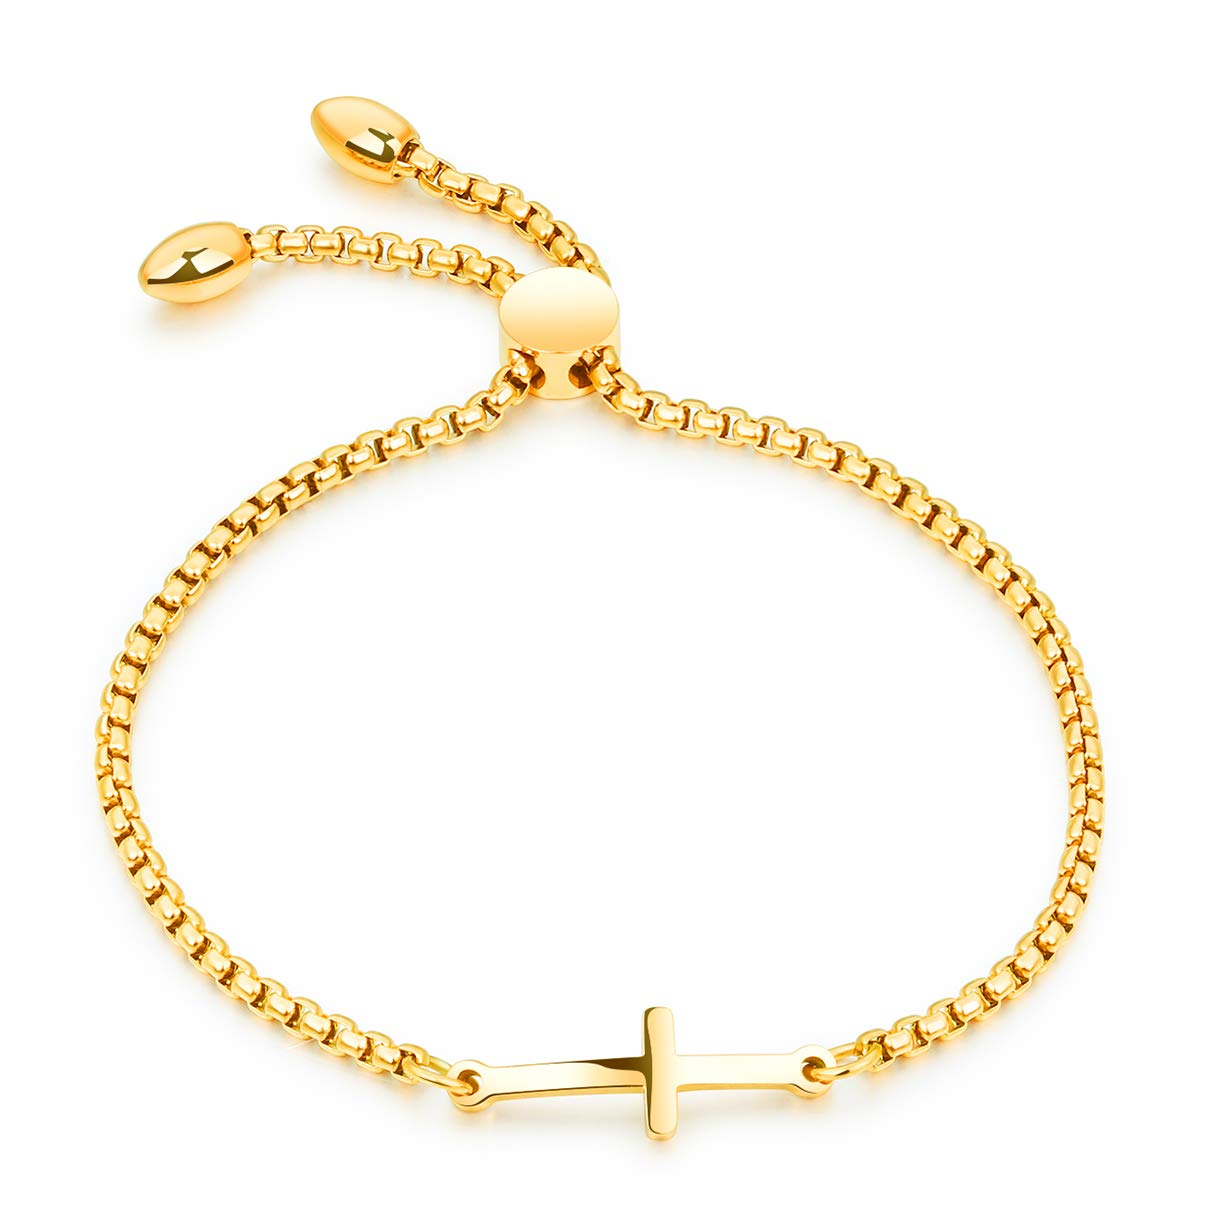 CHARMFAME Korean Style Adjustable Gold Plated Stainless Steel Cross Bracelet Fashion Jewelry for Women /& Girls